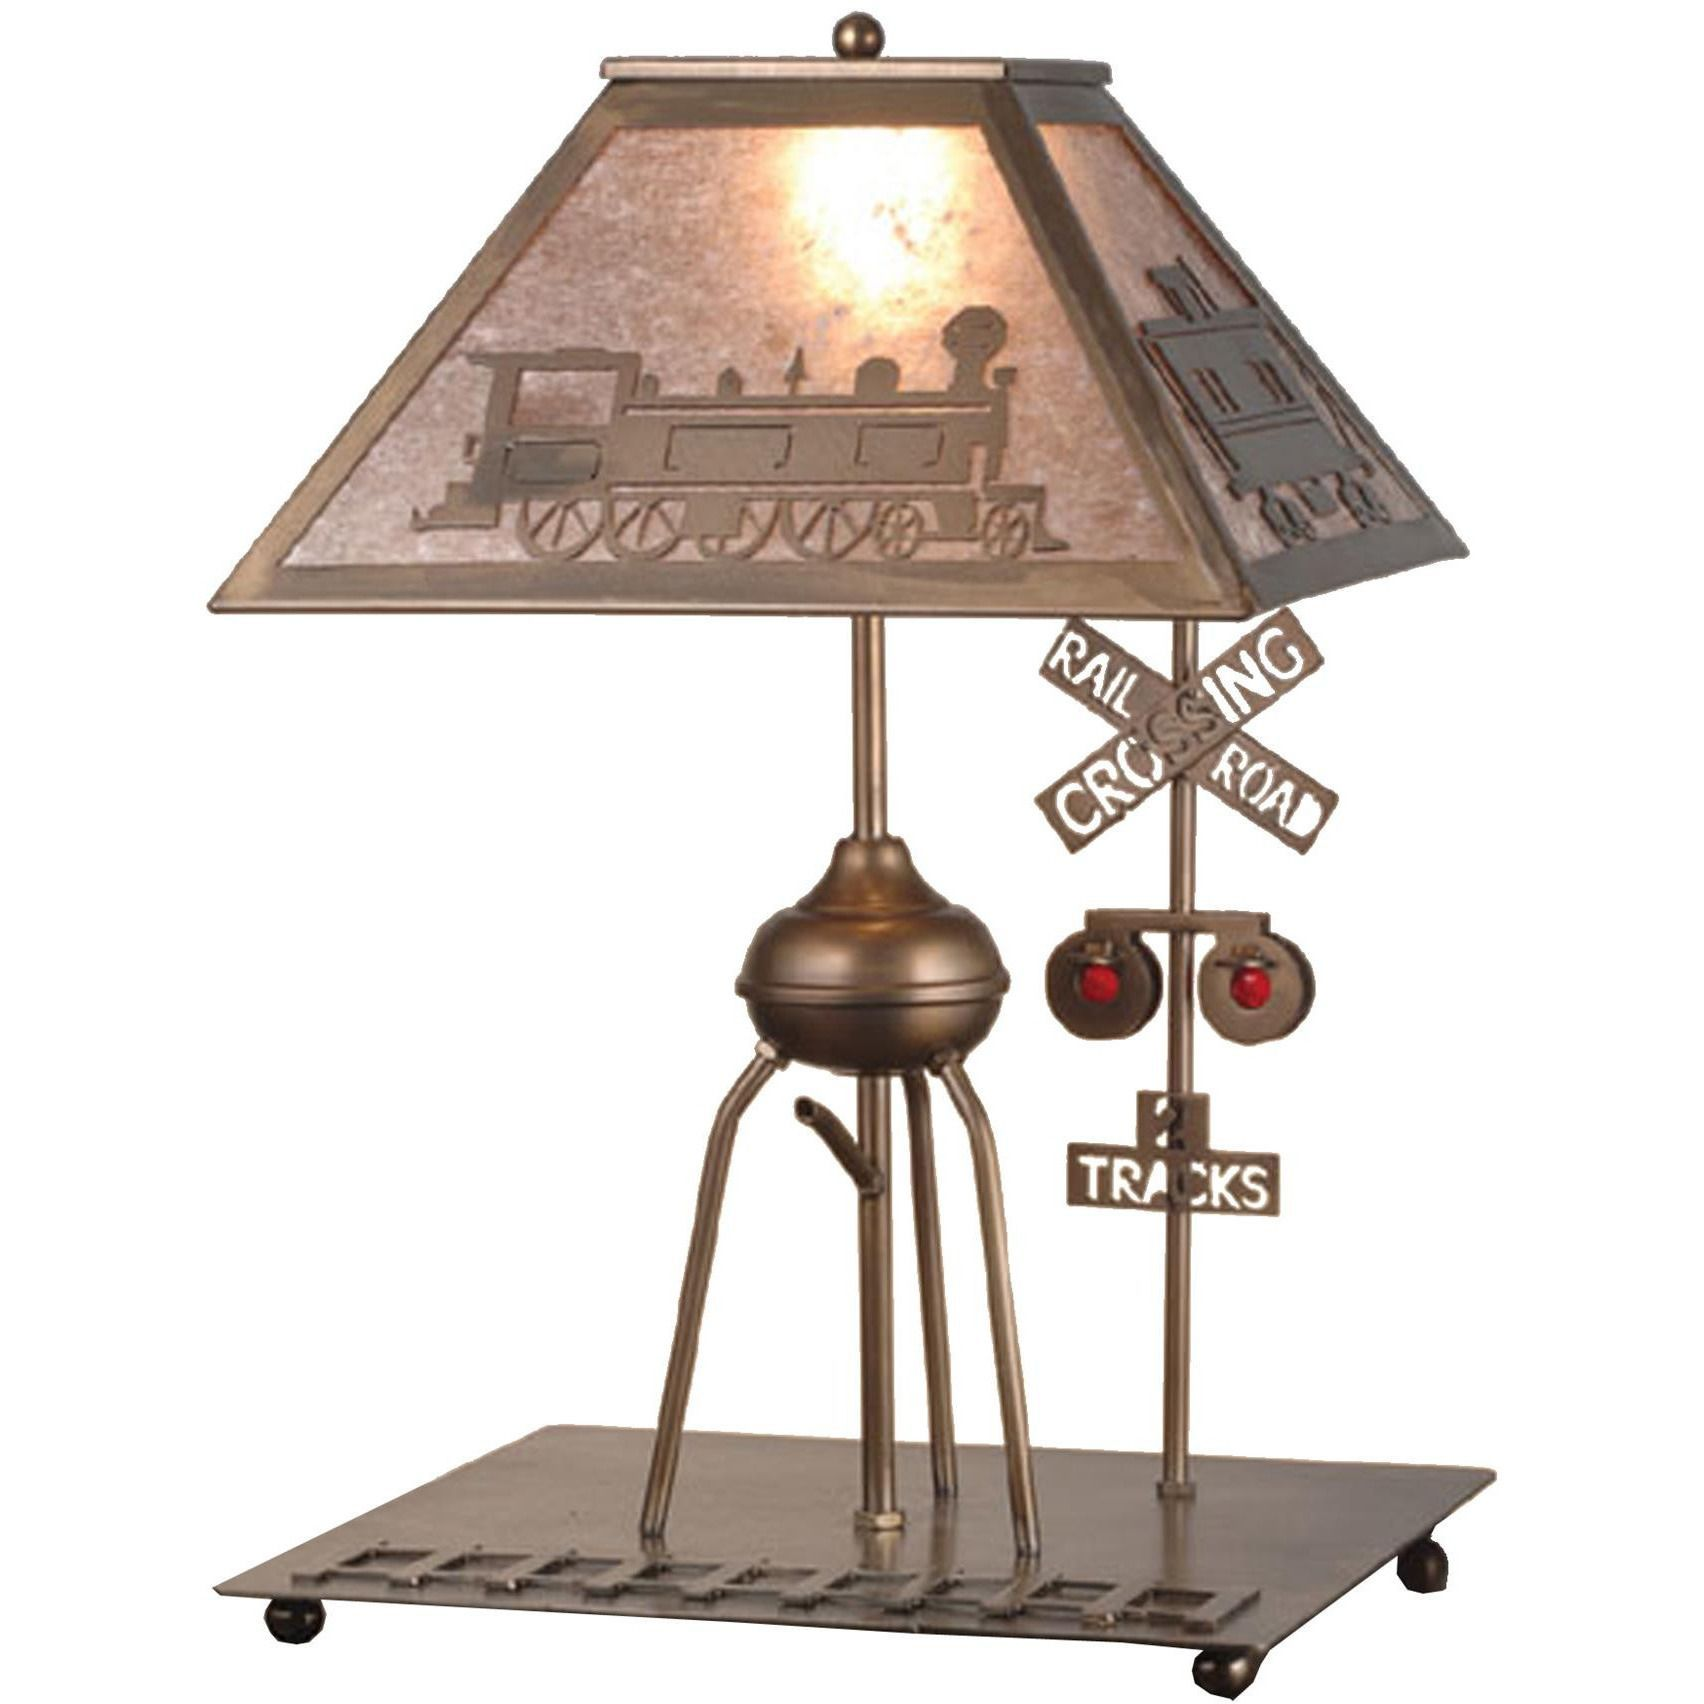 245 inch h train table lamp train table and products 245 inch h train table lamp geotapseo Gallery